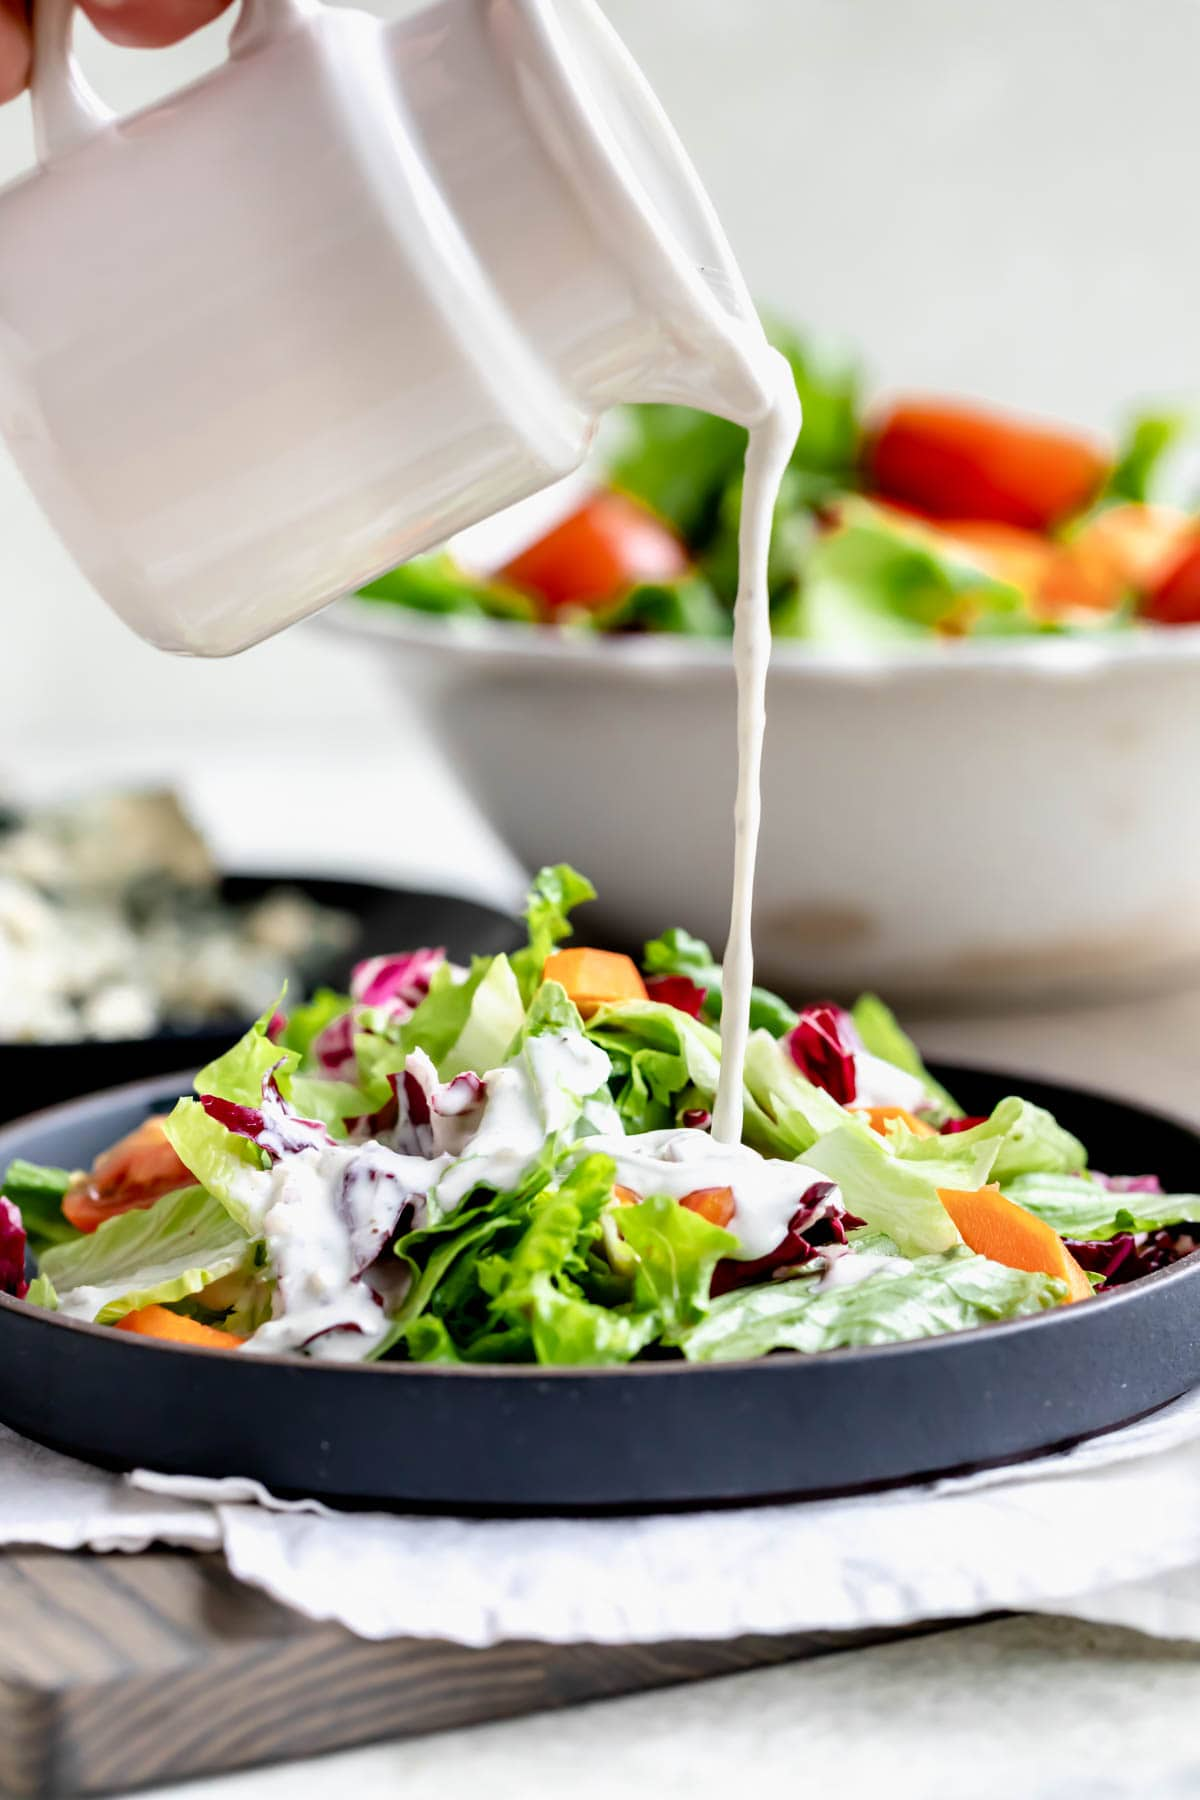 a pitcher of dressing pouring over a plate of salad